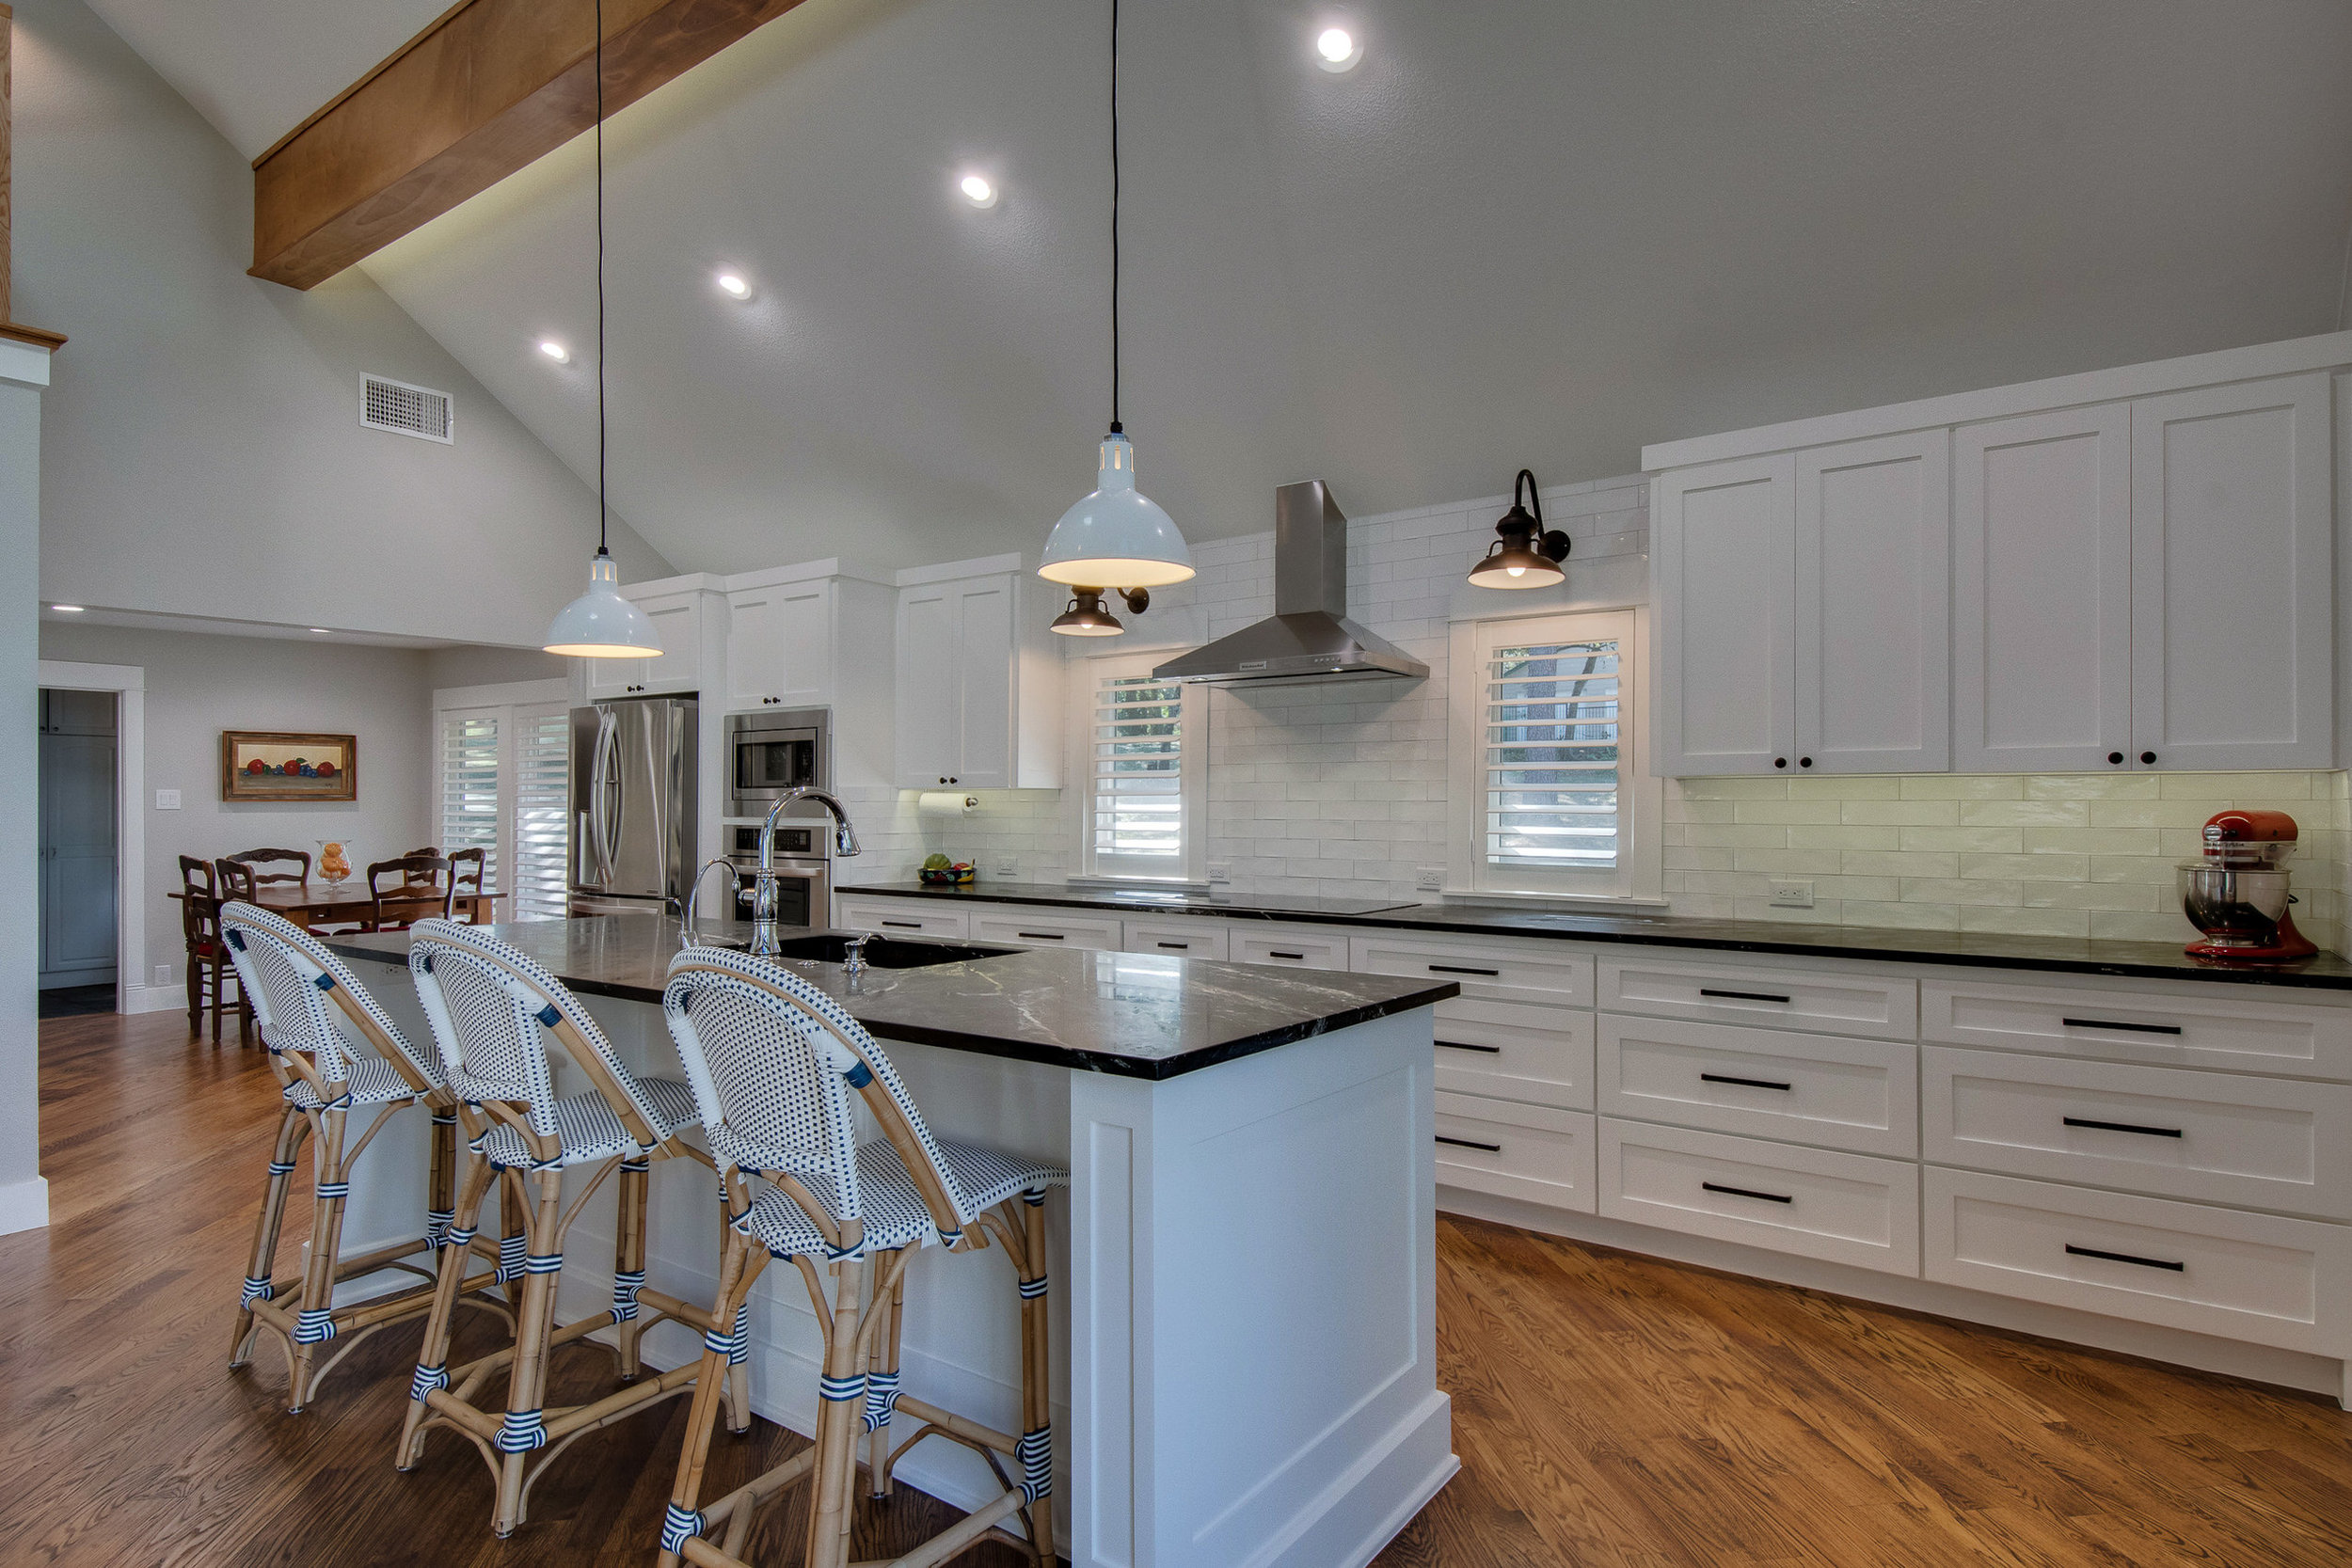 RHR Builders: Residential General Contractor - Home Remodeling & New ...